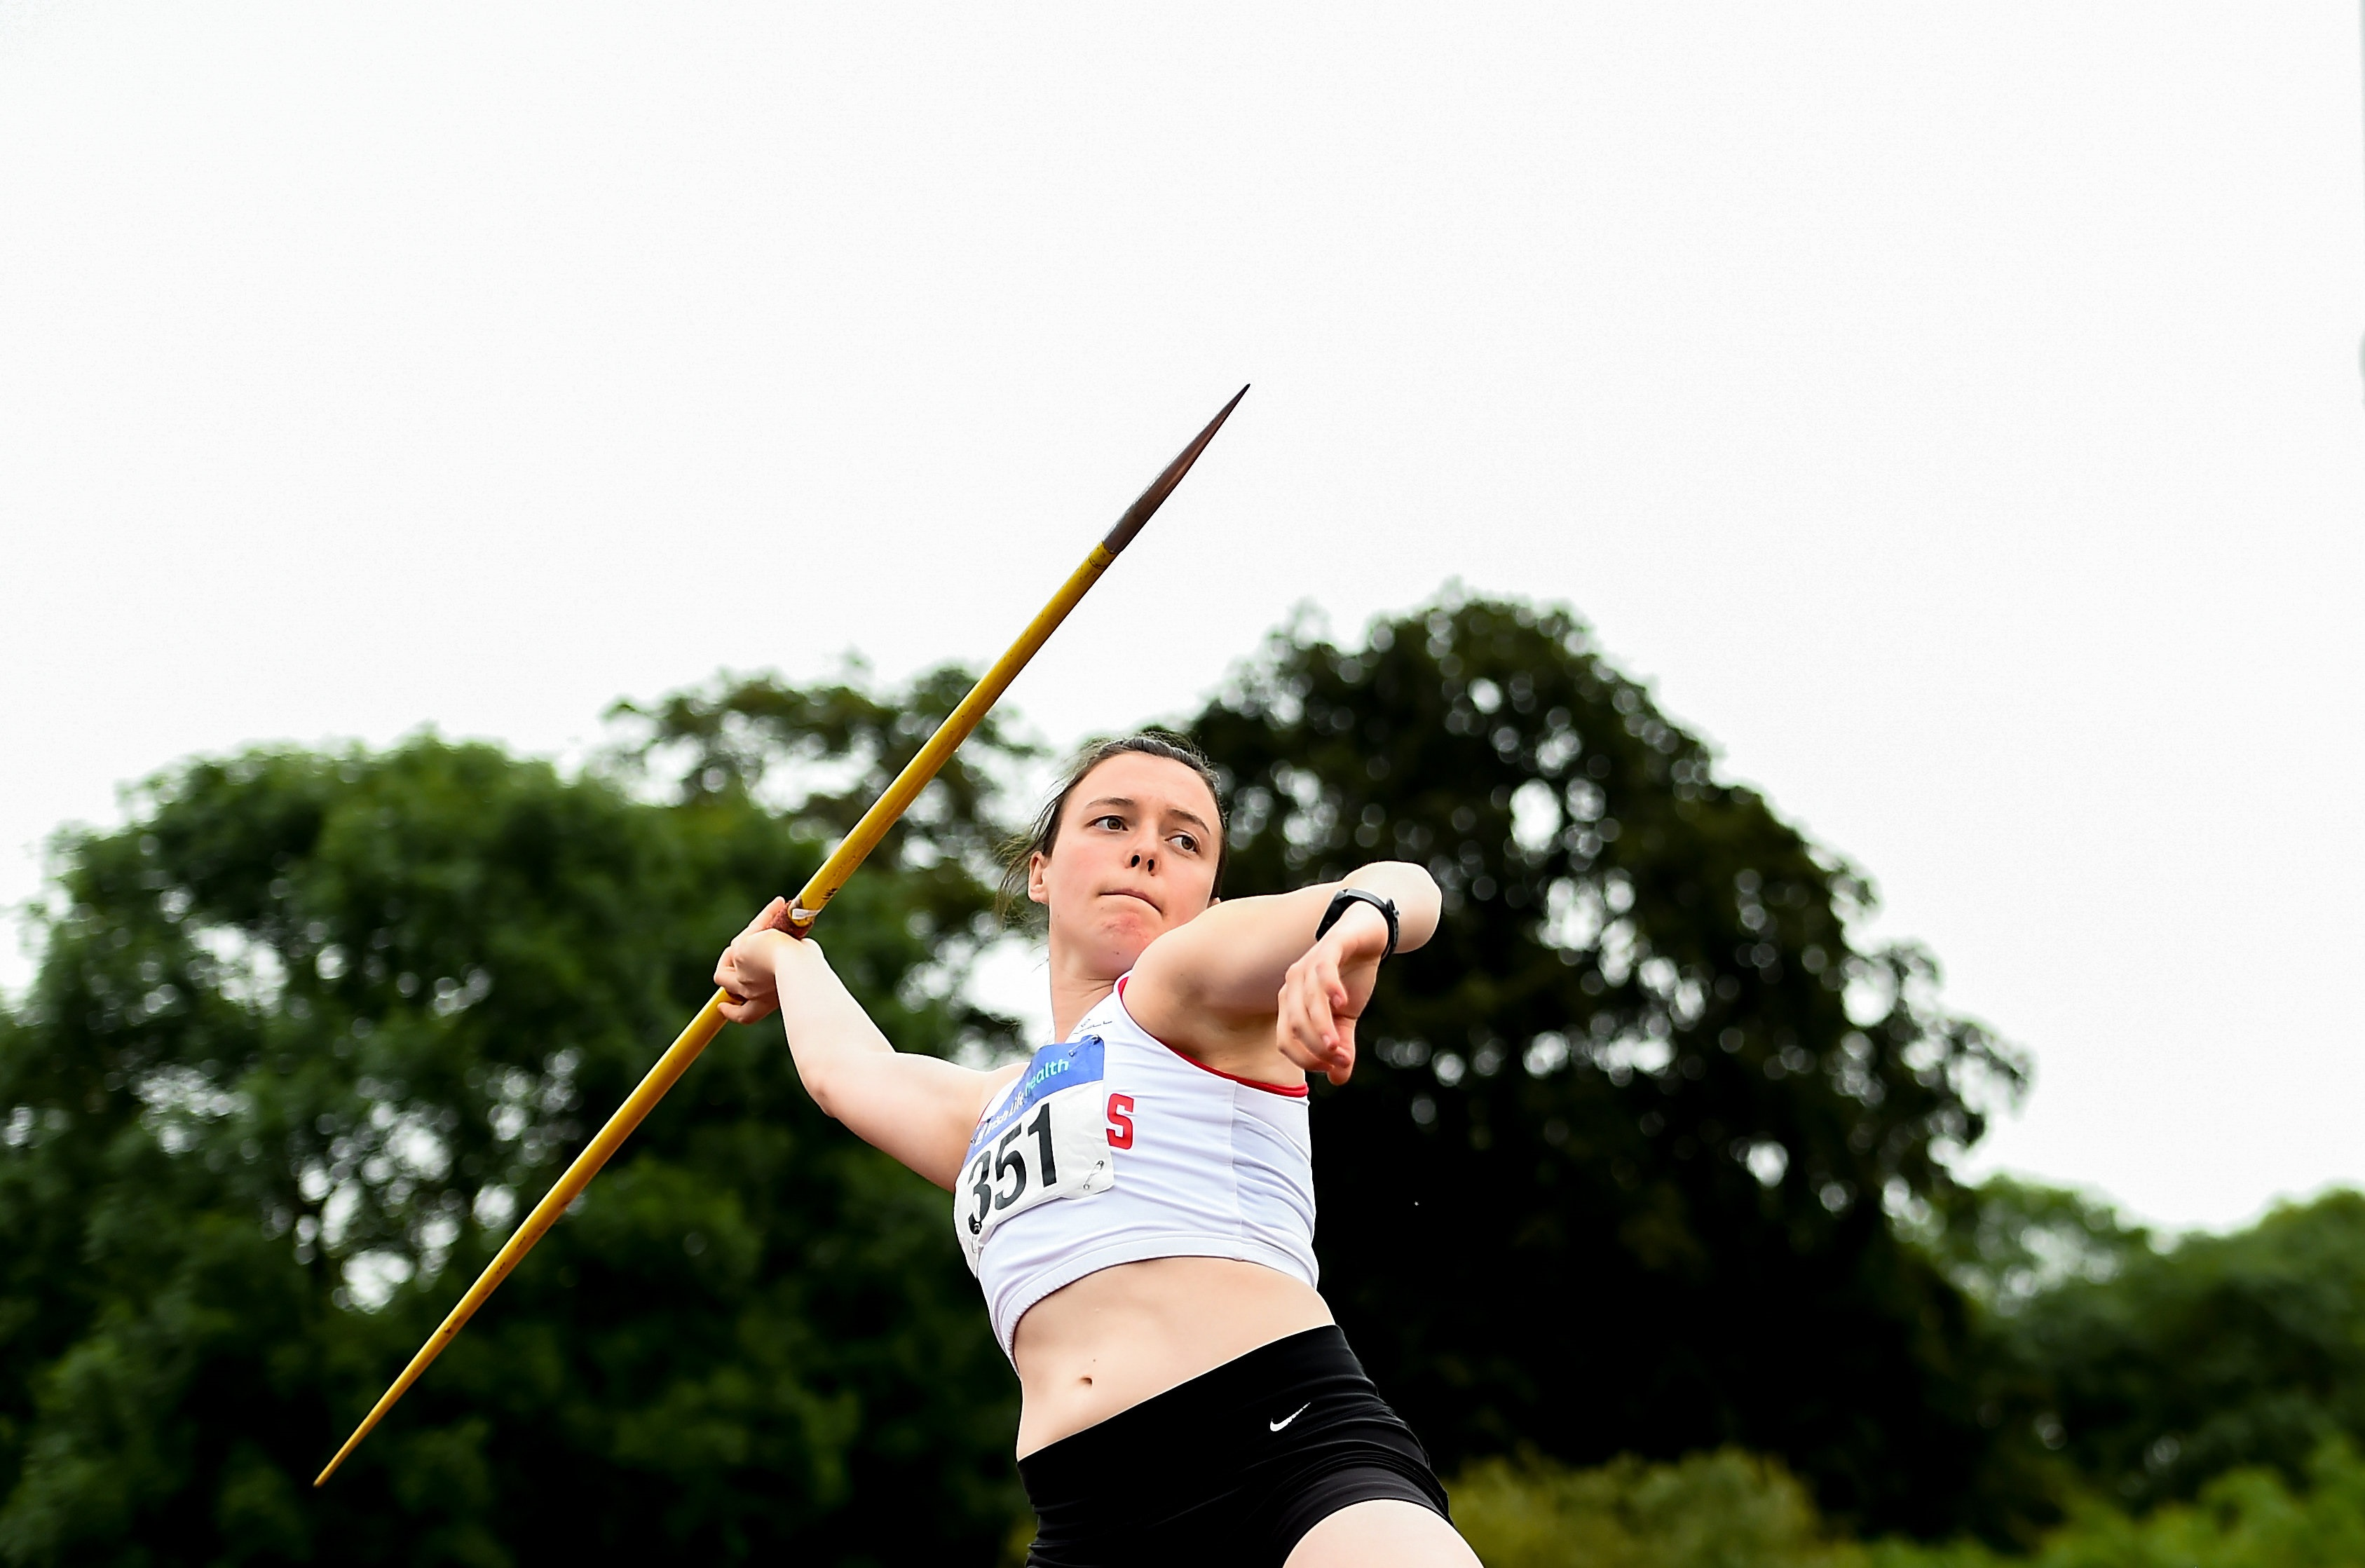 A busy weekend of action at the AAI Games and Combined Events